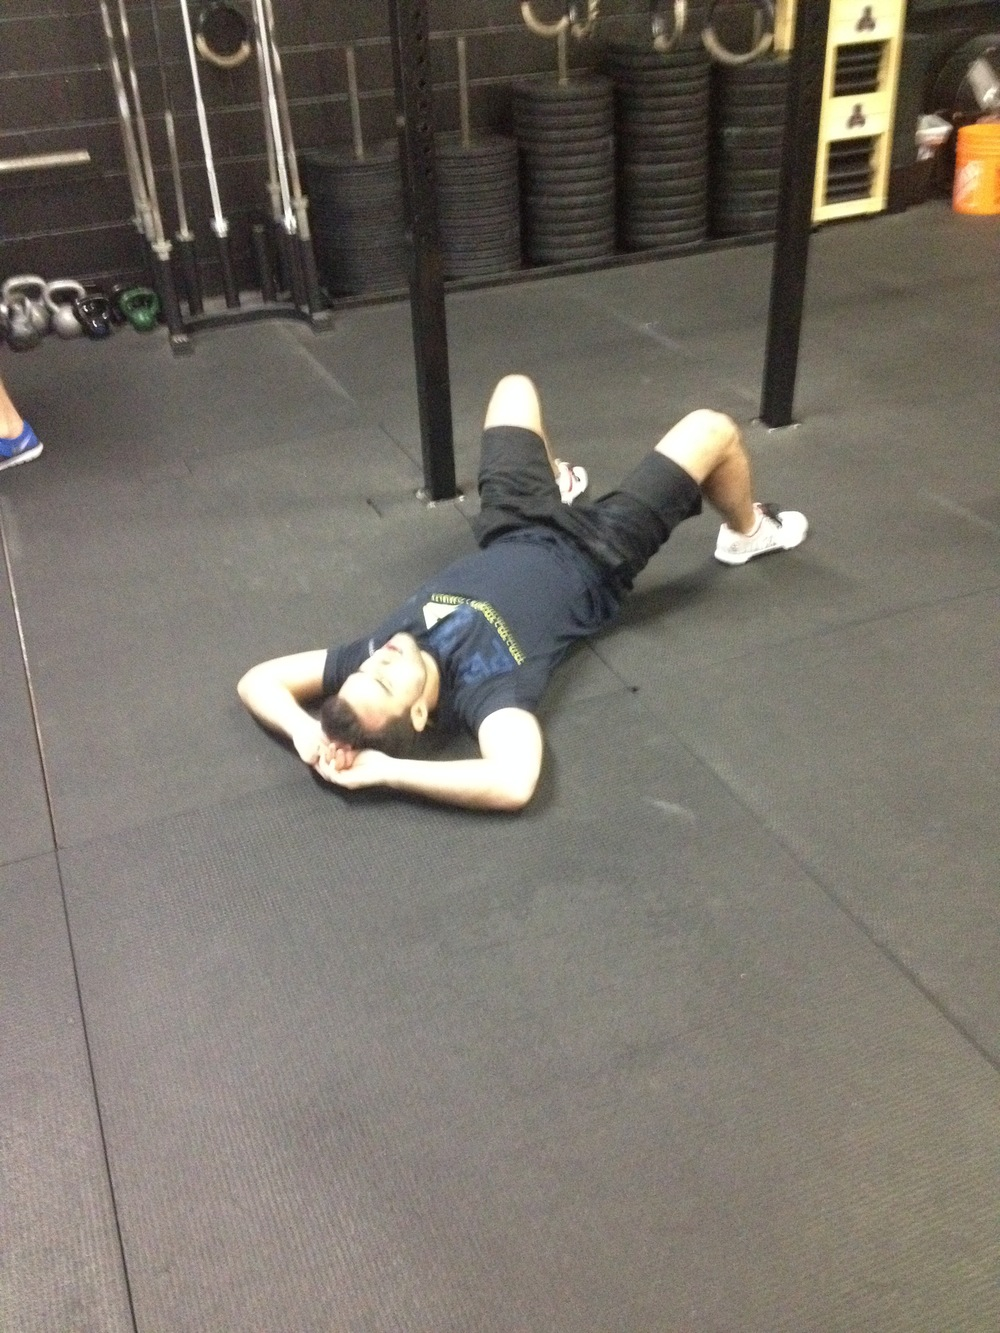 Sergio post WOD. After completing his first RX Fran in just over 6 mins